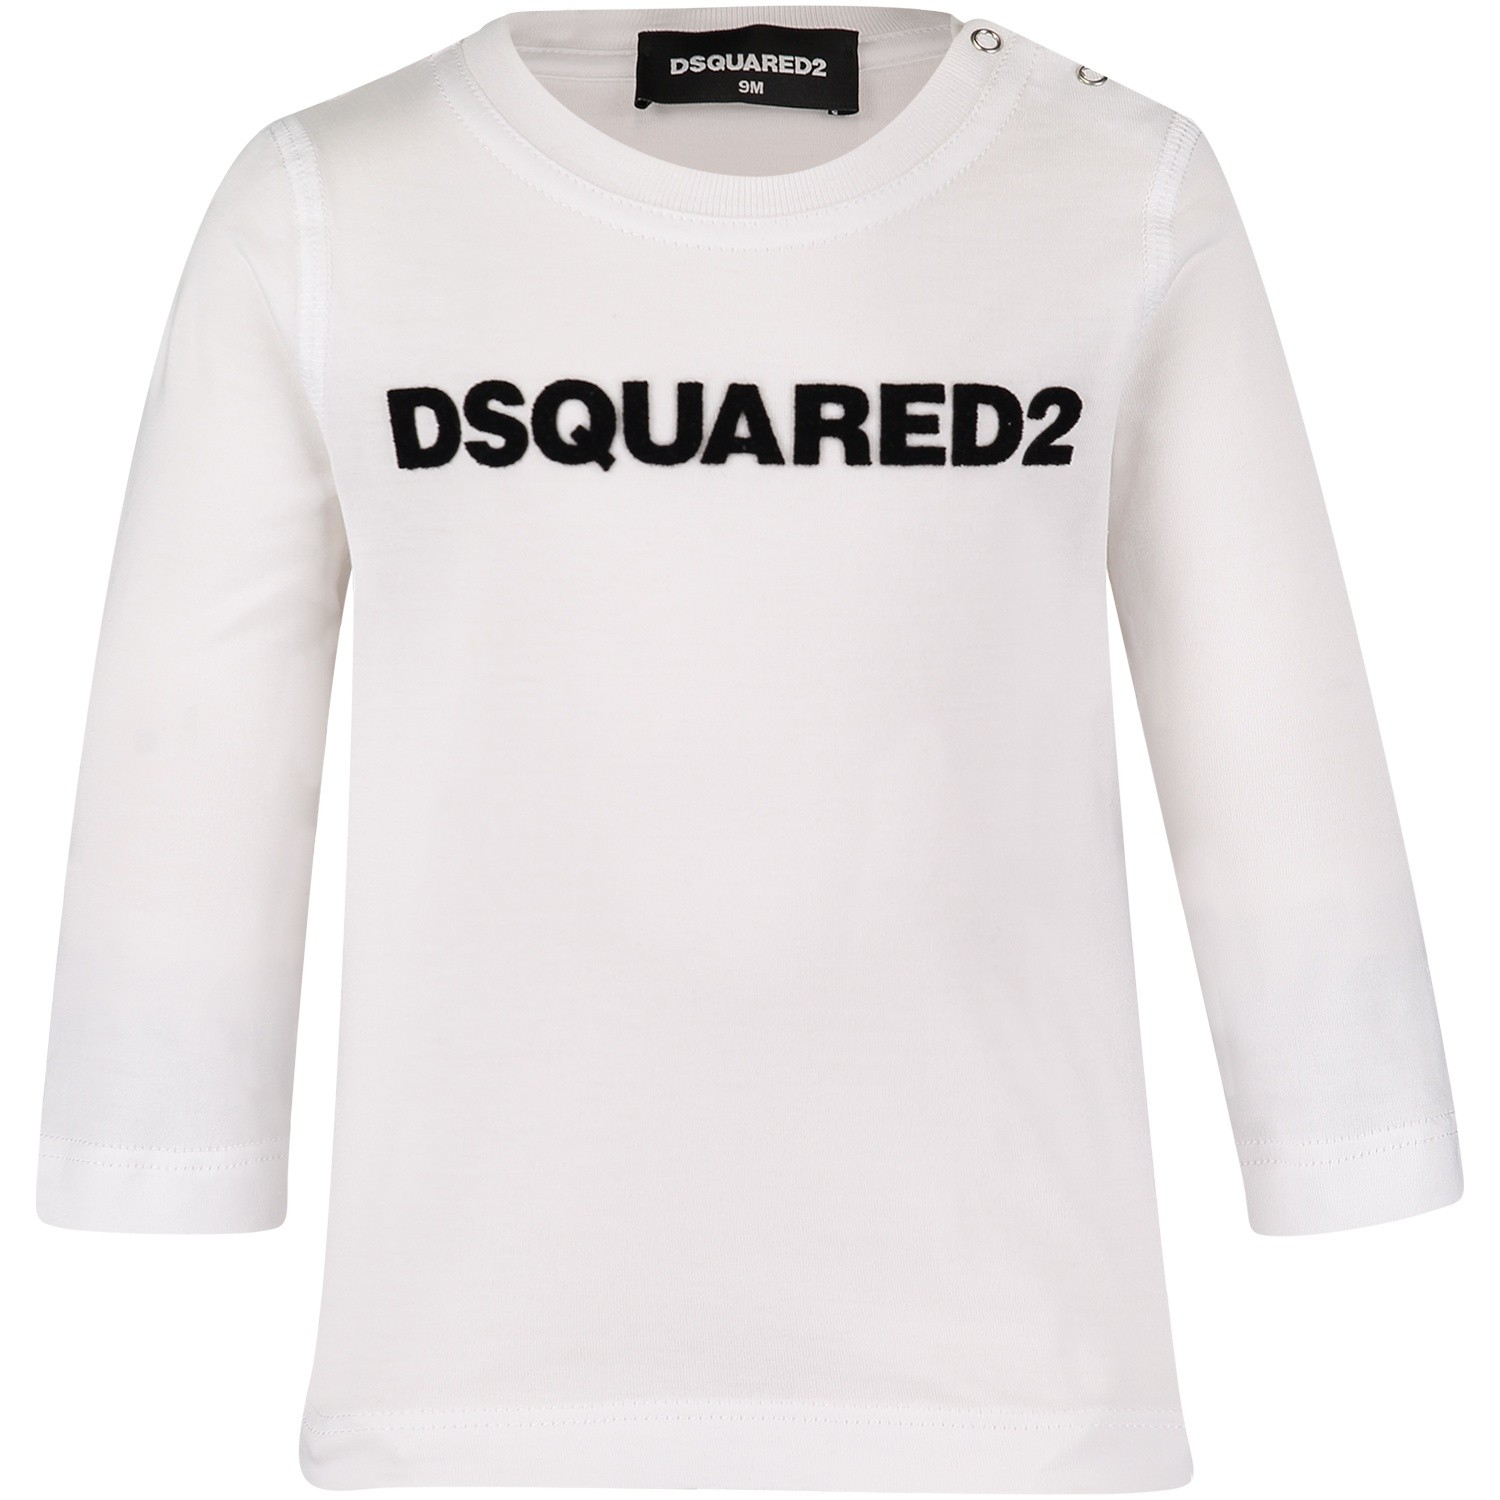 Afbeelding van Dsquared2 DQ02ZQ baby t-shirt wit